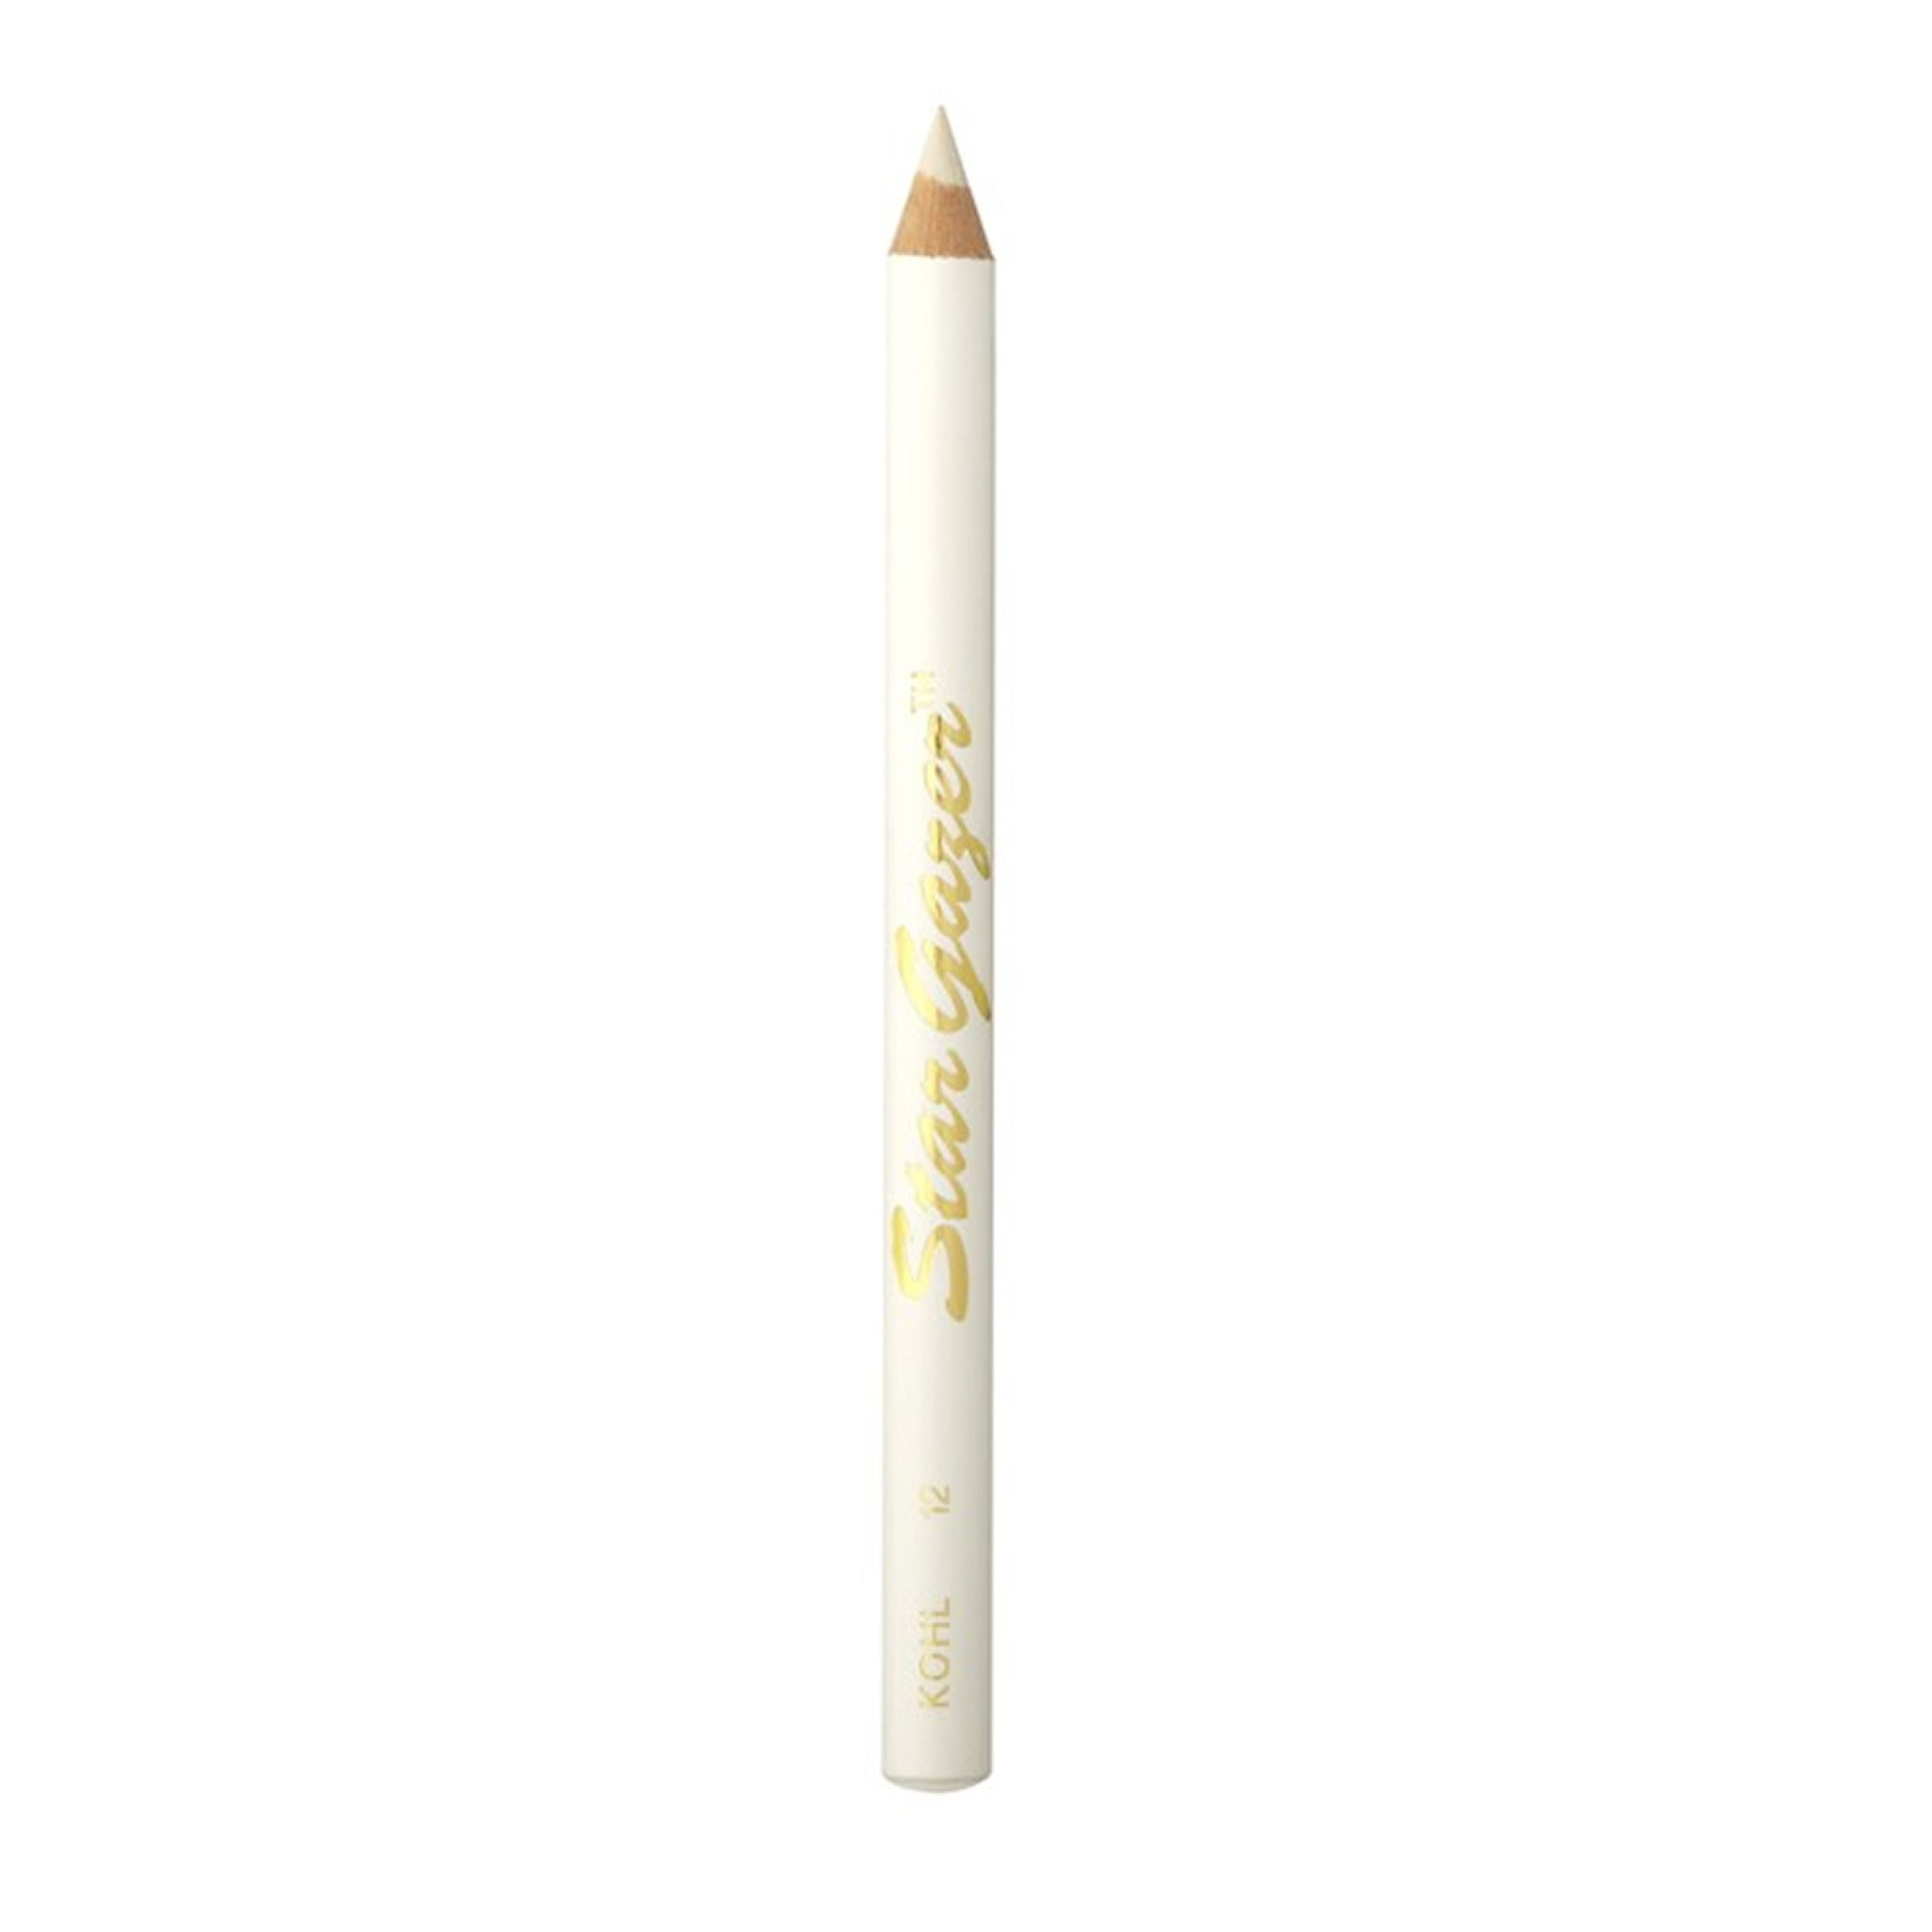 Stargazer Eye Pencil - 12 - Red Carpet FX - Professional Makeup